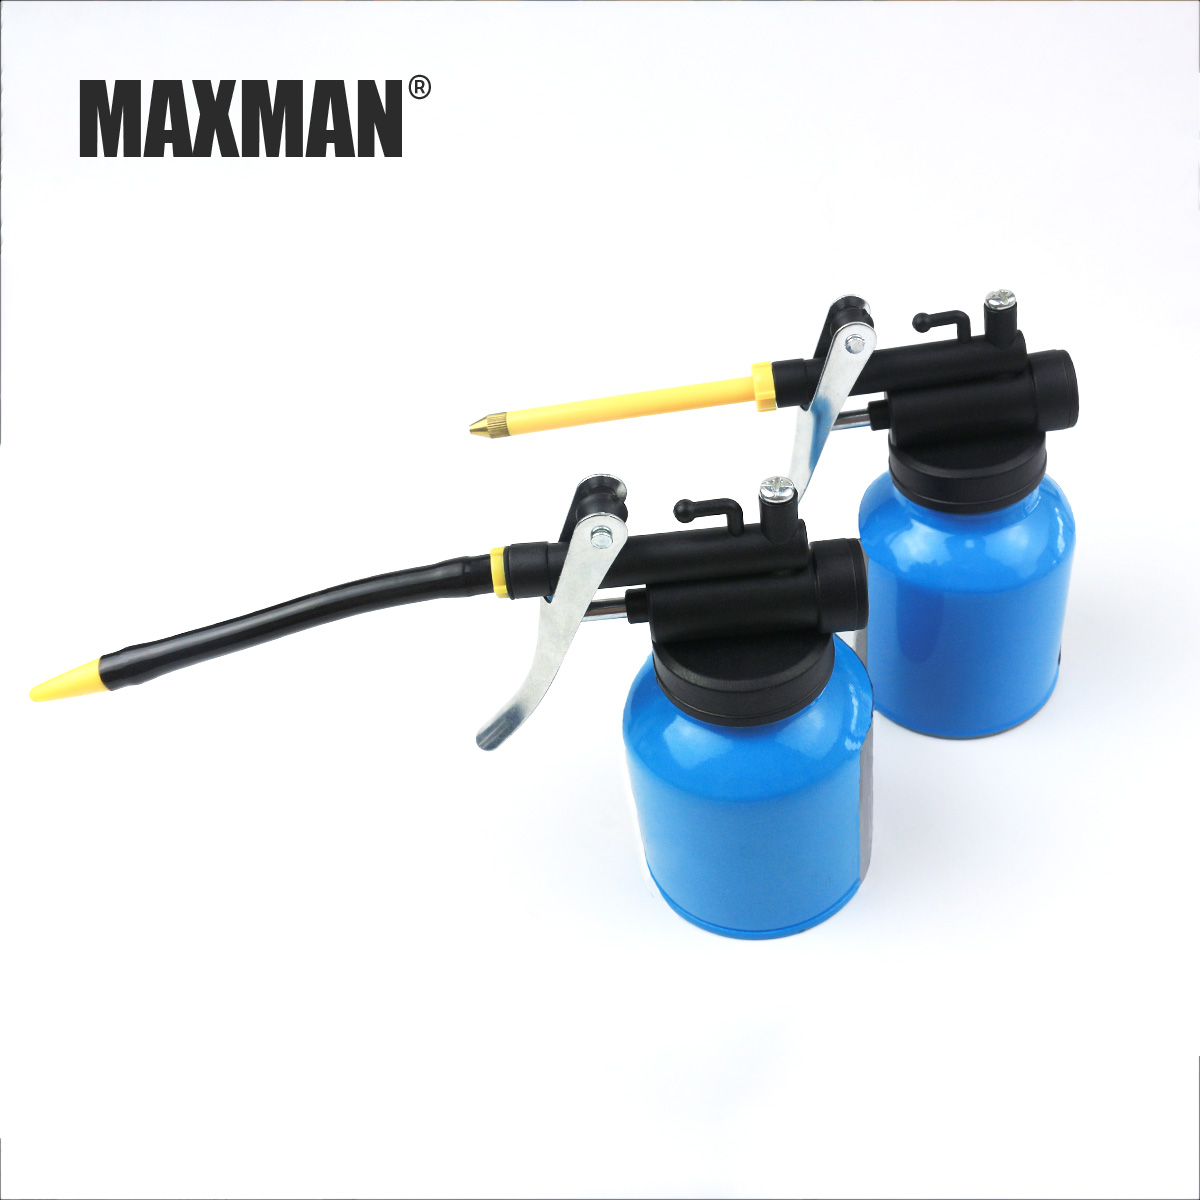 New Transparent High Pressure Pump Oiler Lubrication Oil Metal Machine Oiler flex Gun Rust Prevention Magazine Filter Function